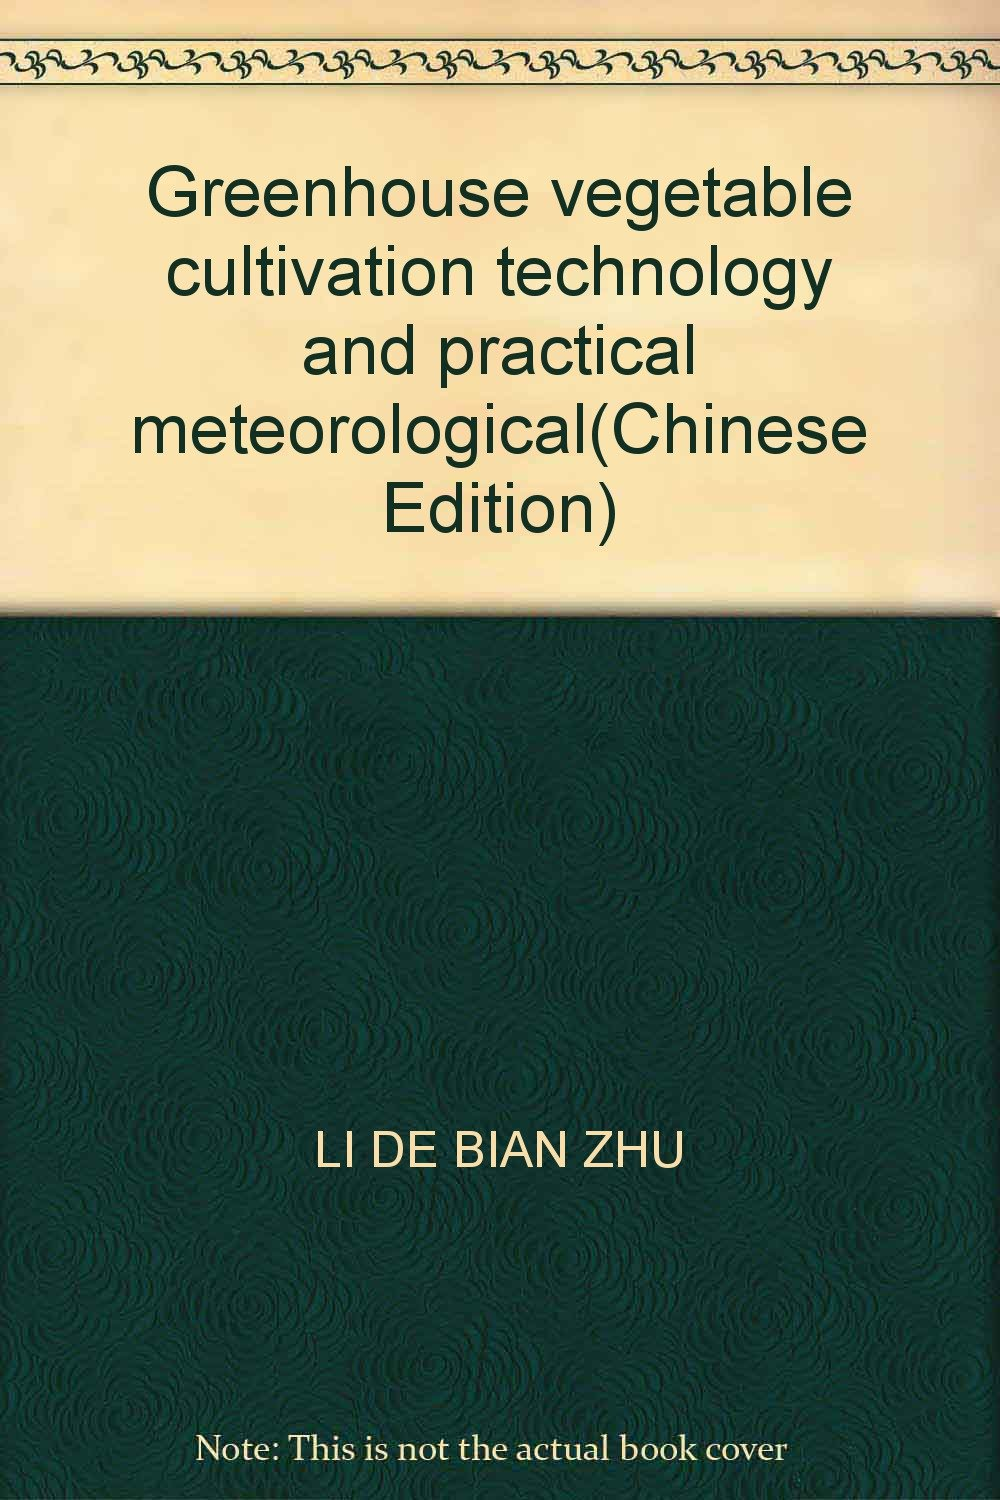 Greenhouse vegetable cultivation technology and practical meteorological(Chinese Edition)